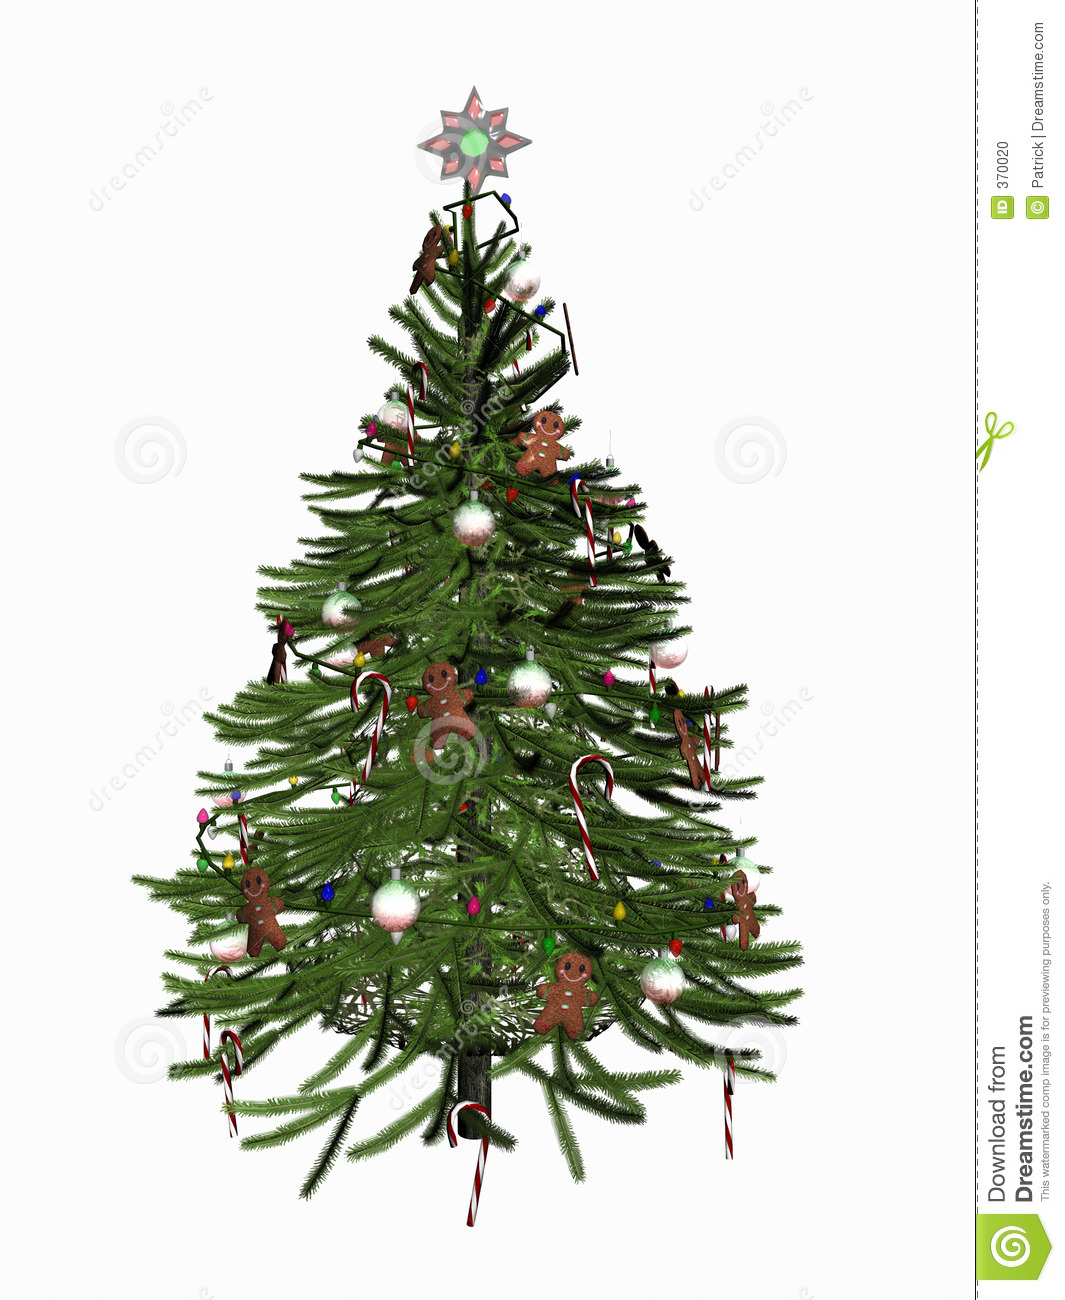 Decorated christmas tree over white on reflective surface 3d